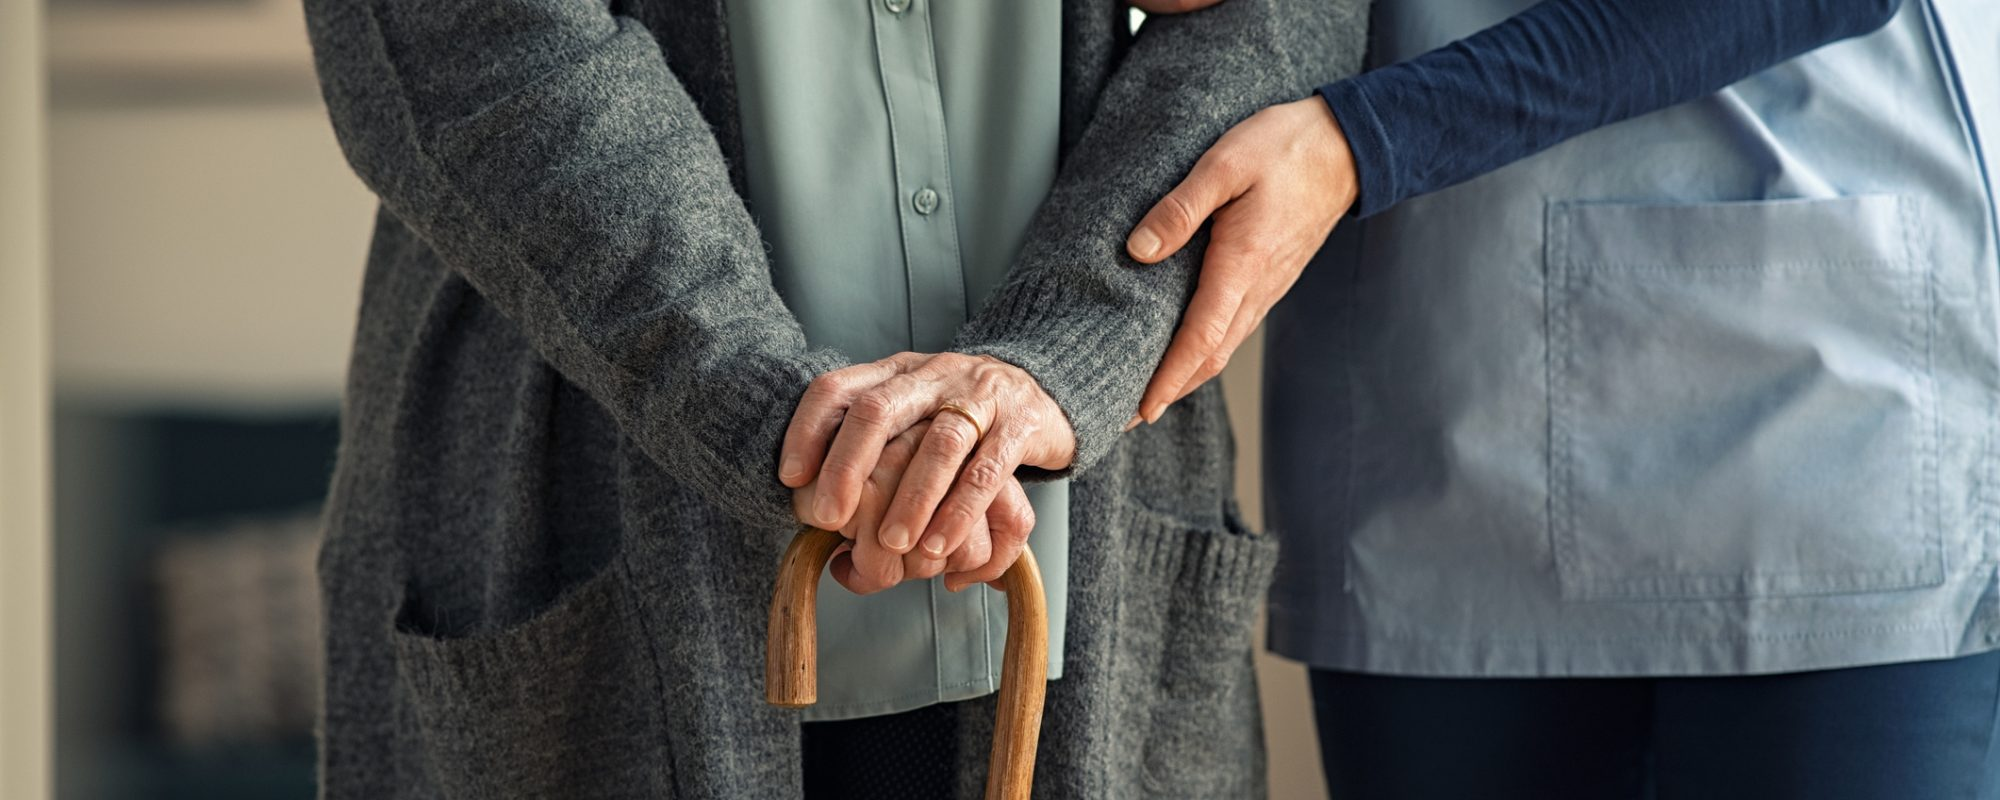 Close up hands of caregiver doctor helping old woman at private clinic. Close up of hands of nurse holding a senior patient with walking stick. Elder woman using walking cane at nursing home with nurse holding hand for support.